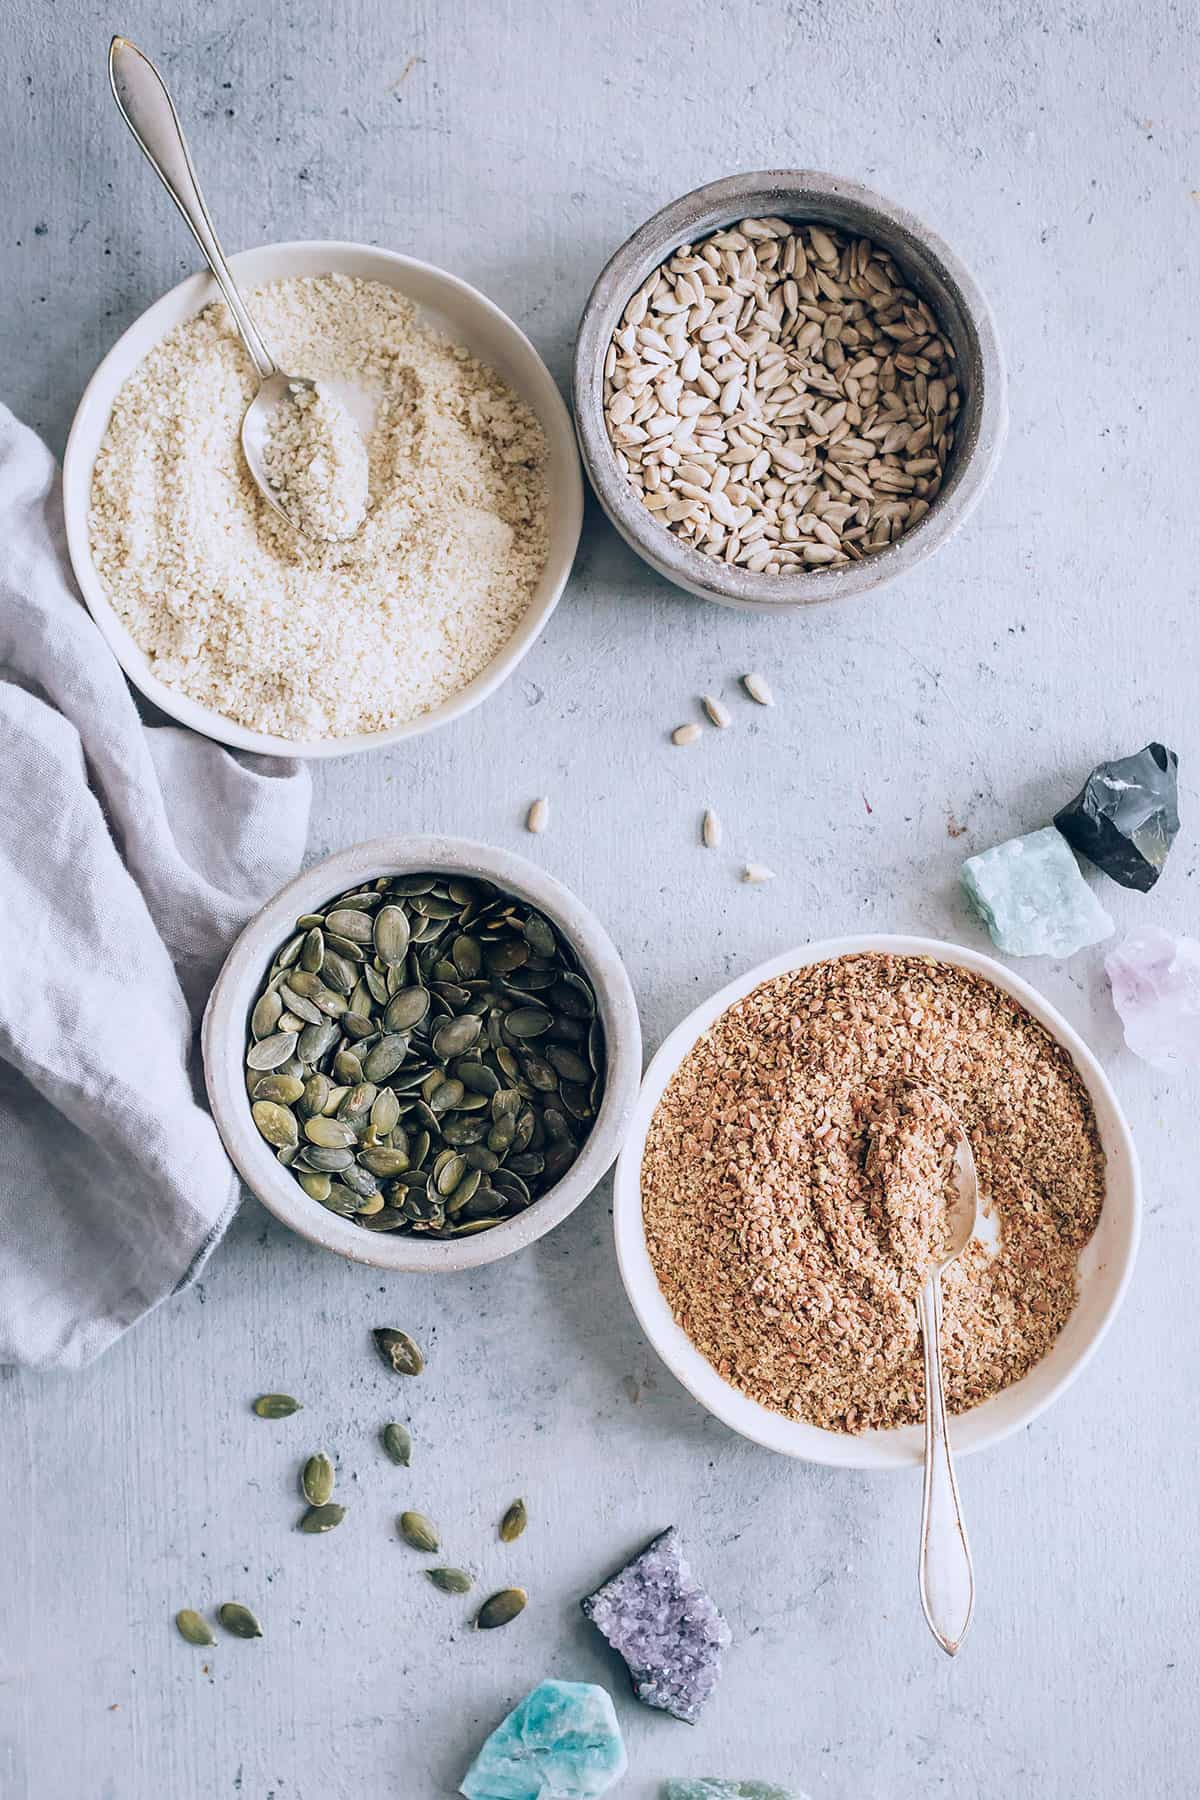 Adding seeds to smoothies for protein